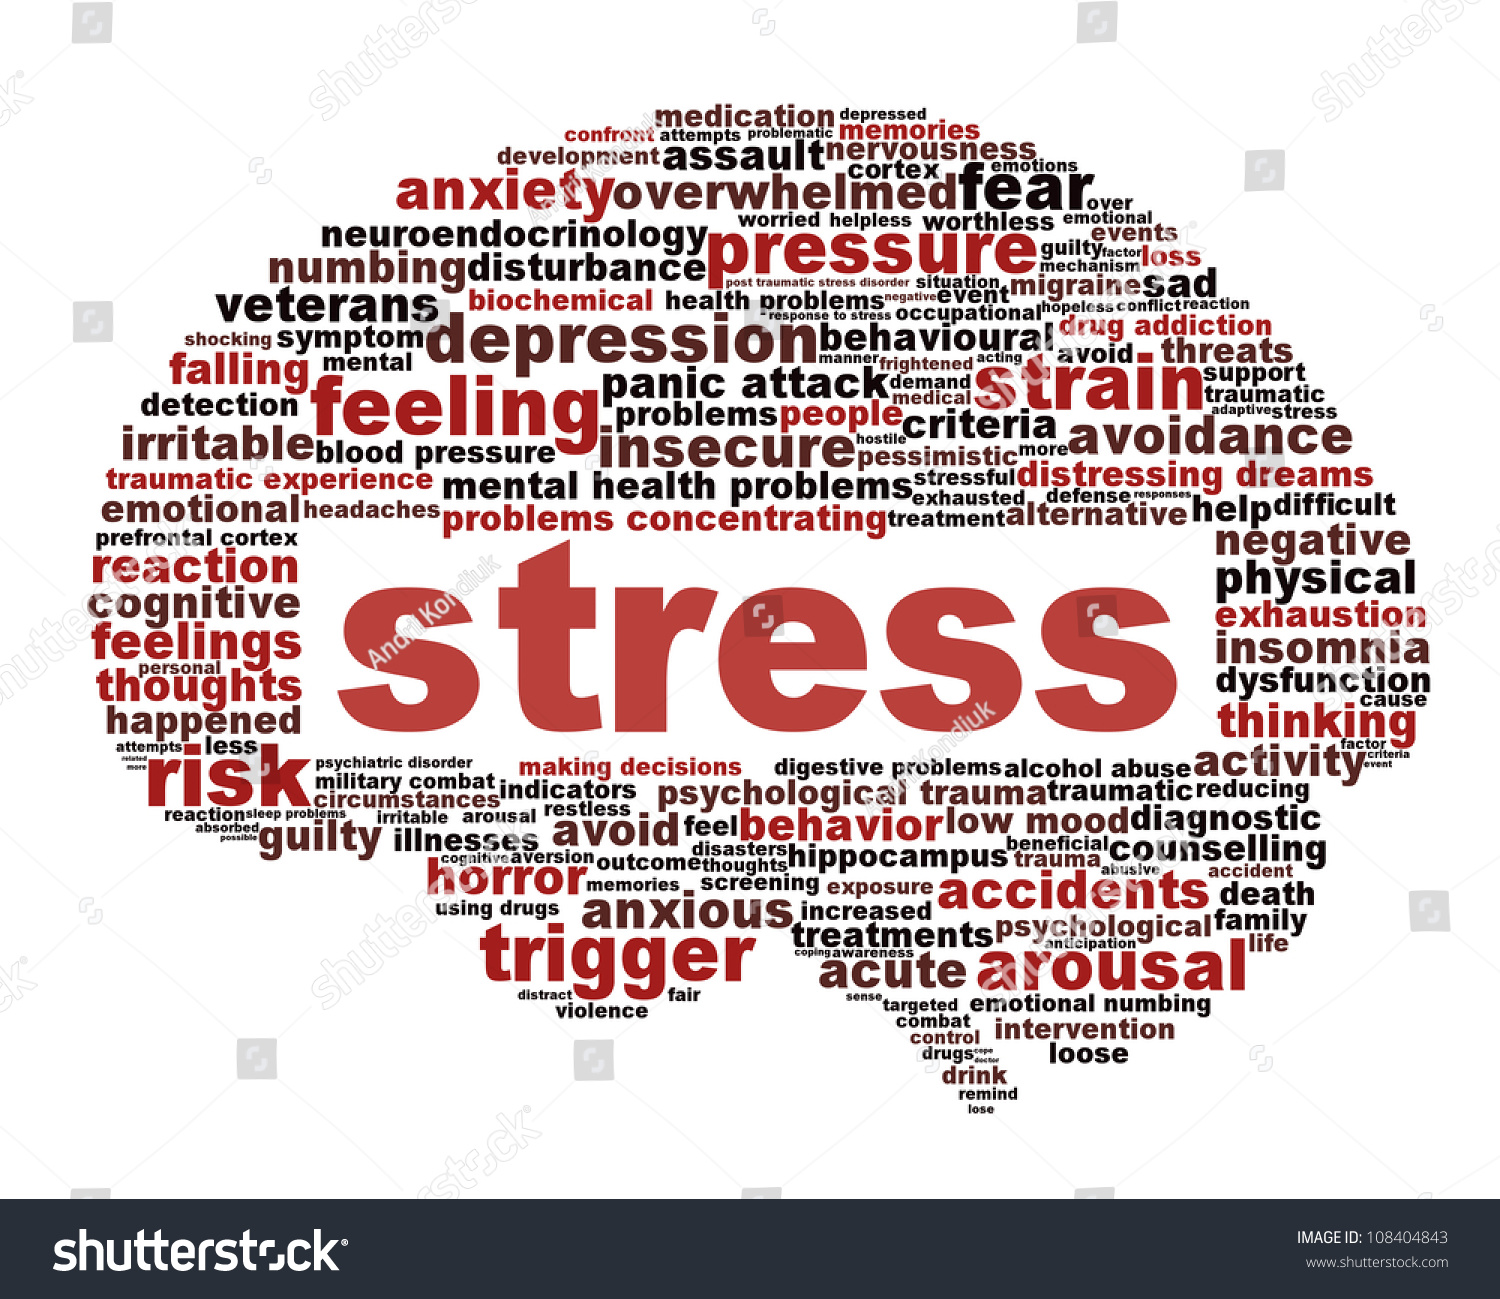 Stress symbol isolated on white background stock illustration stress symbol isolated on white background feeling of low mood and anxiety icon conceptual design buycottarizona Image collections